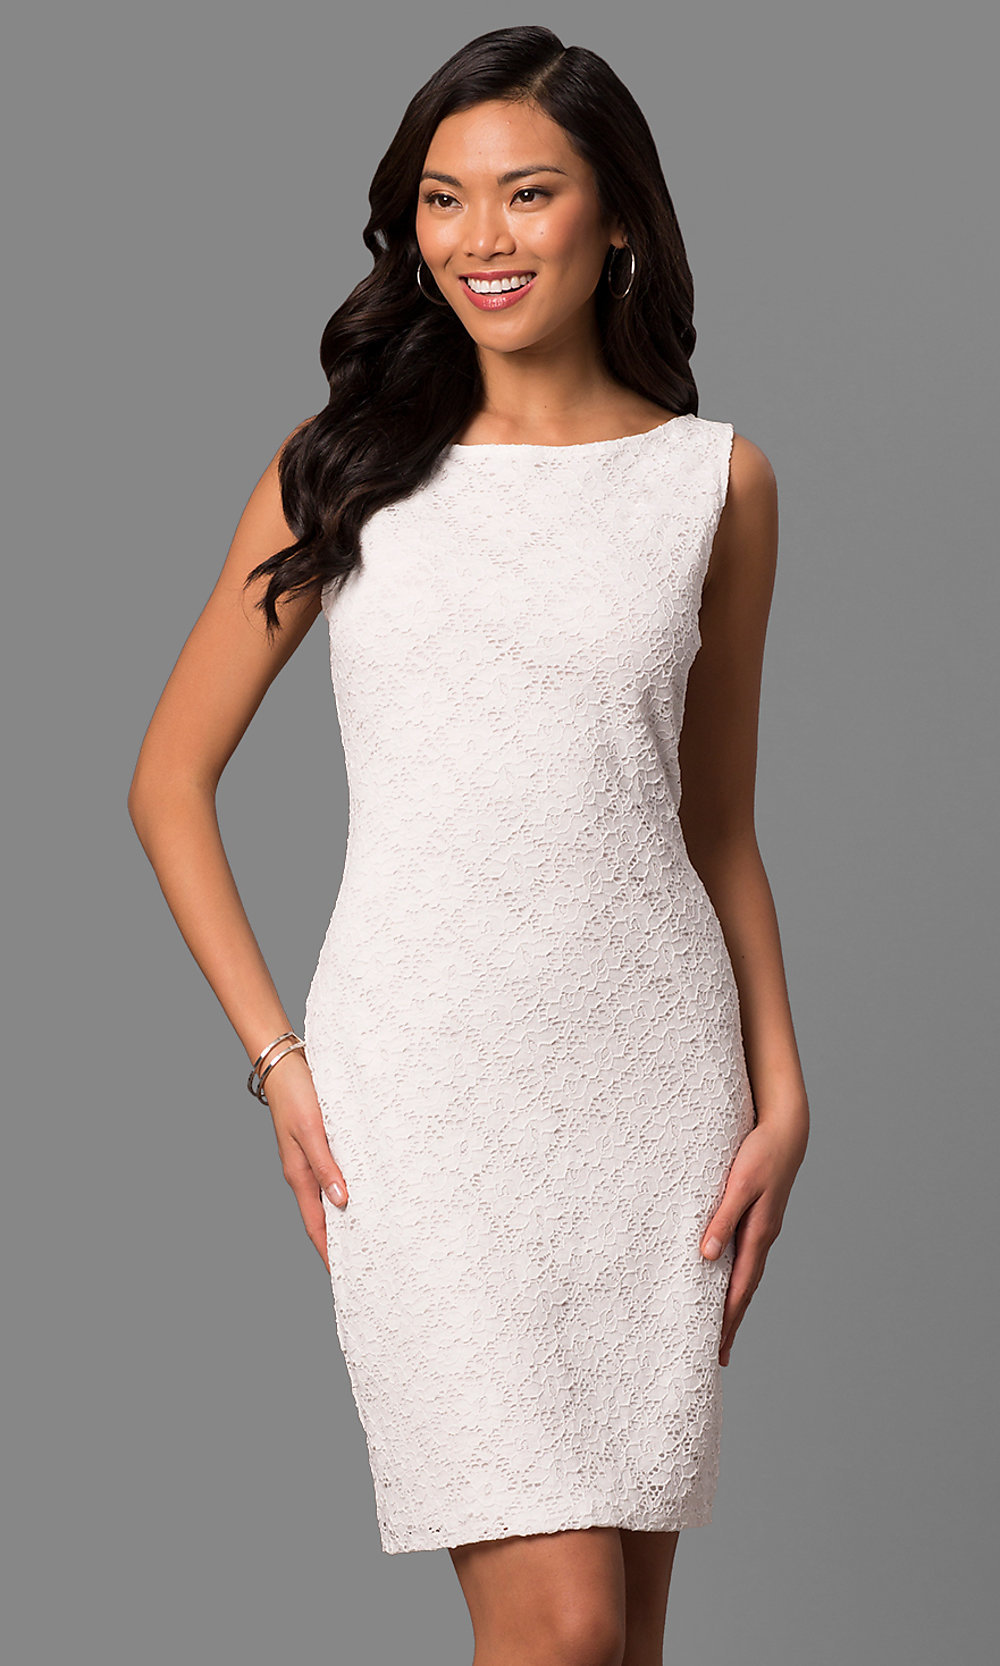 White Lace Short Rehearsal Dinner Party Dress